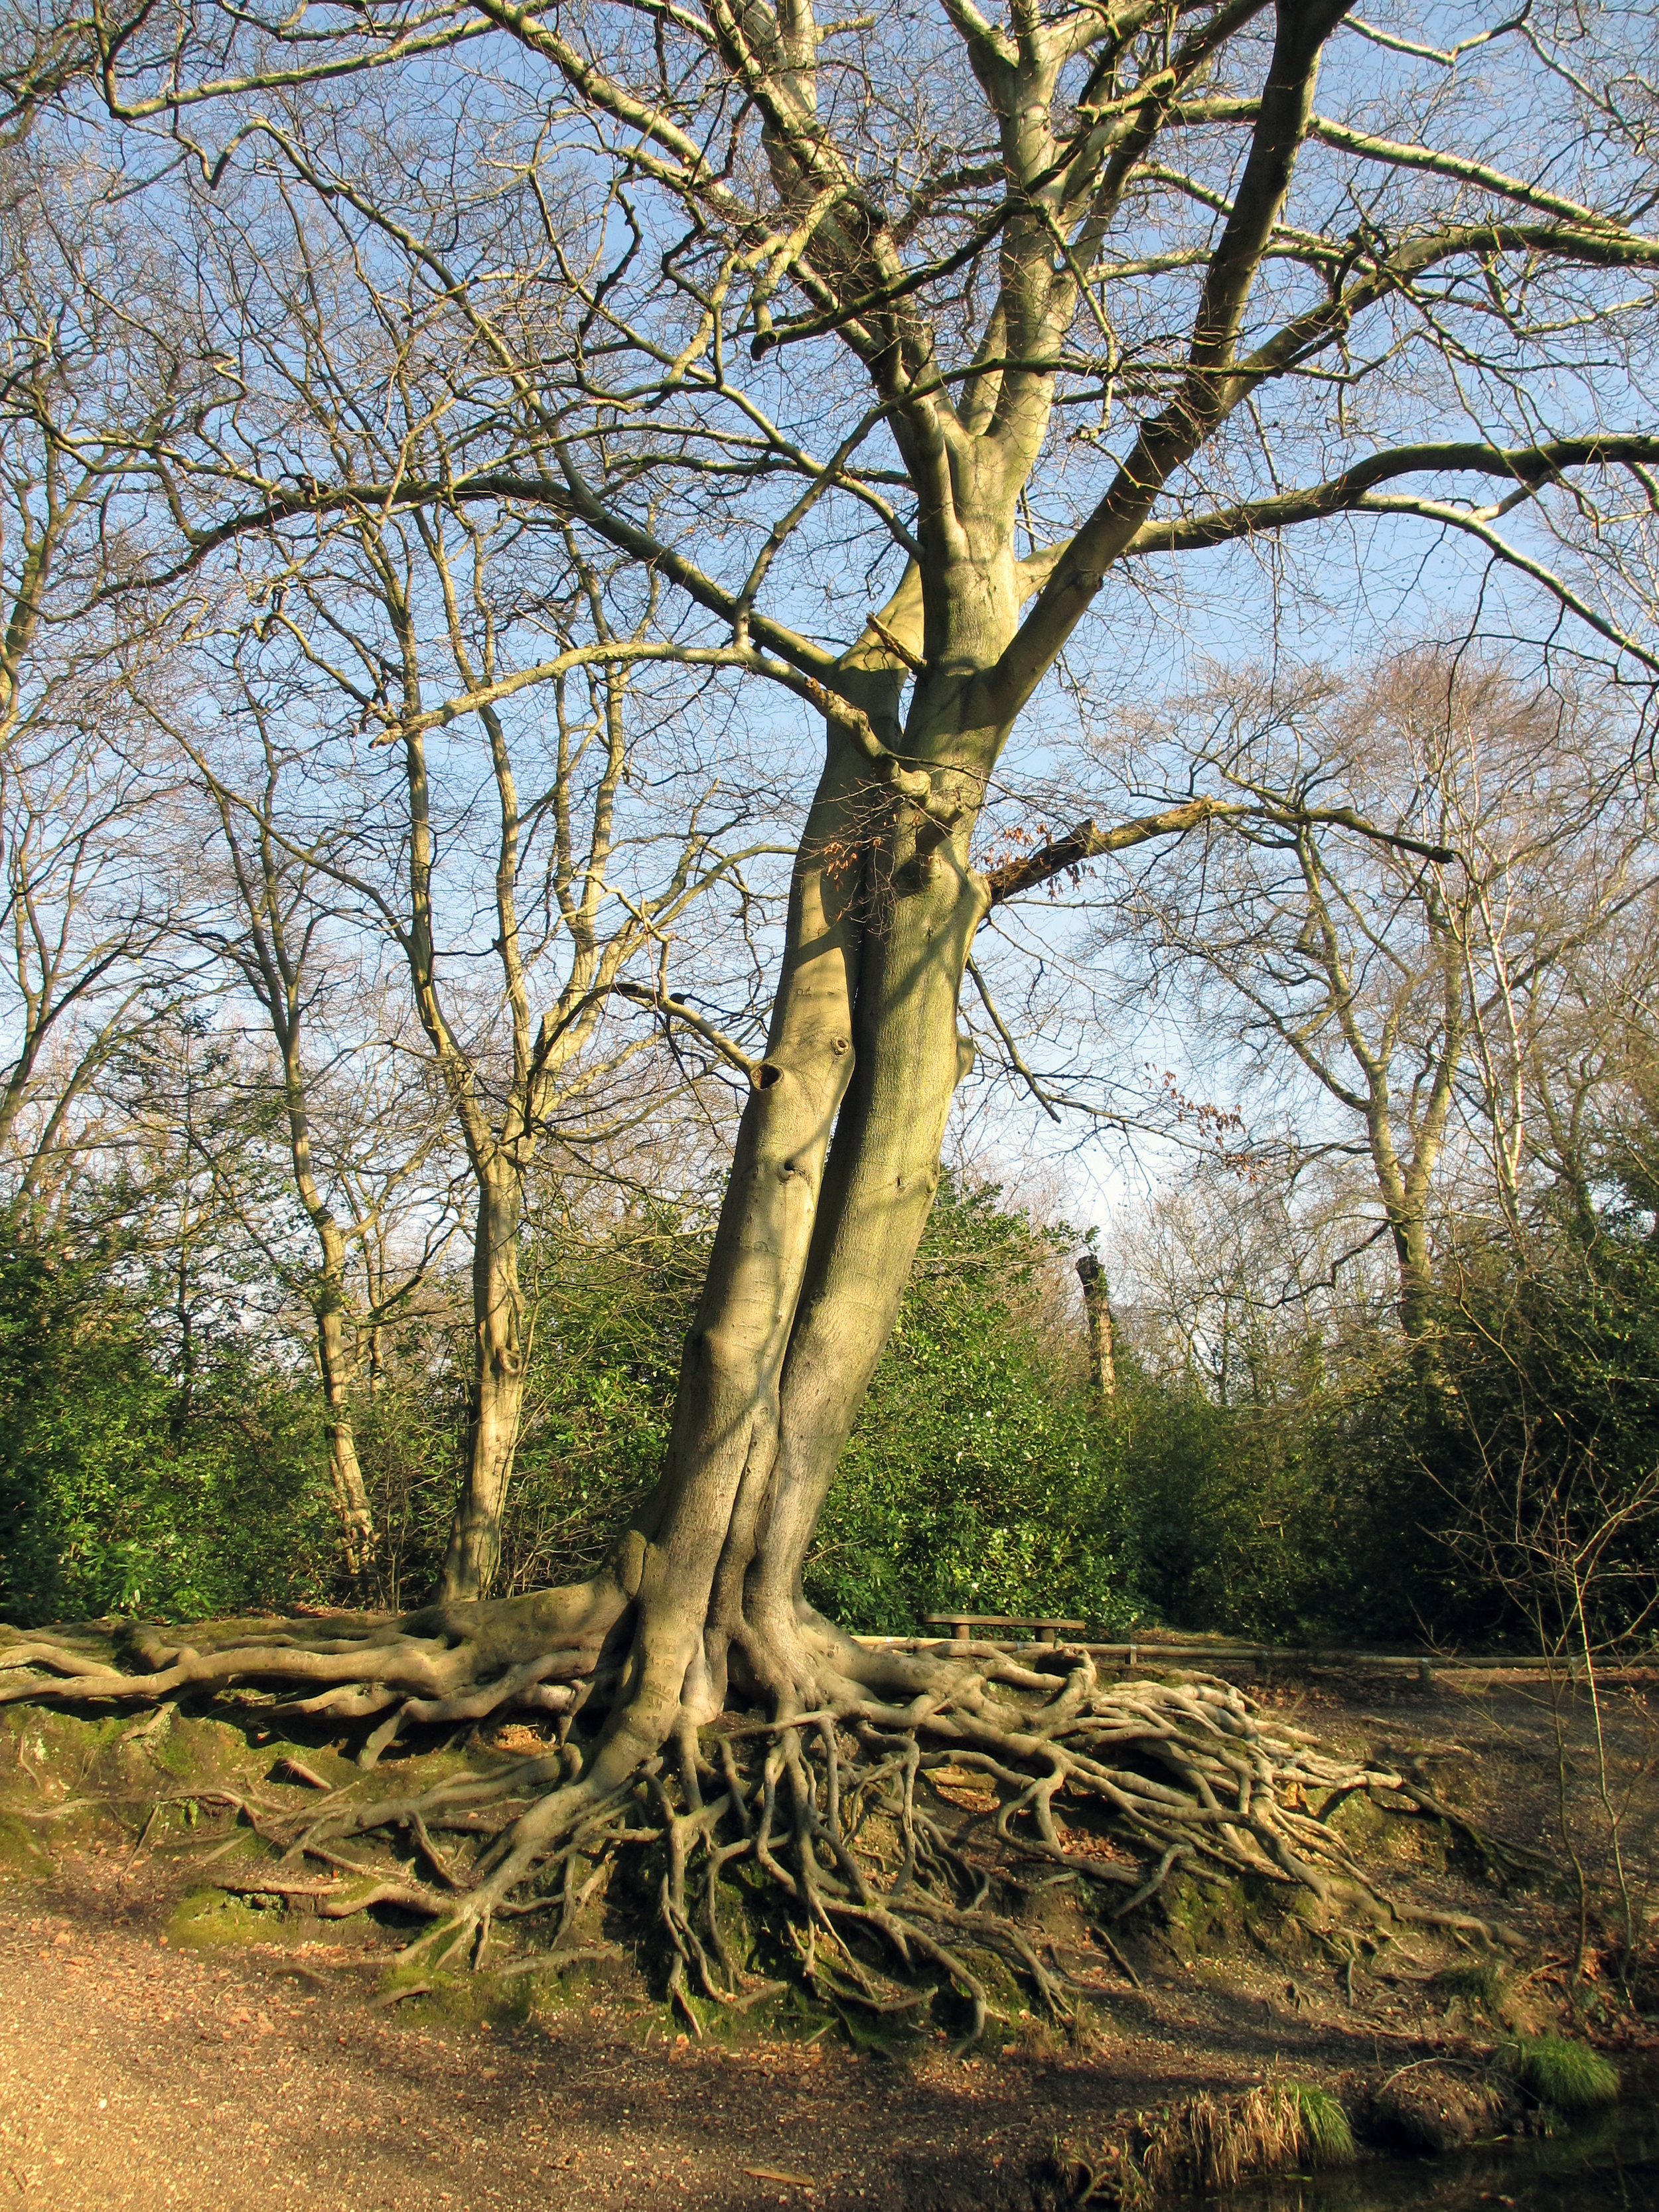 By Nature or Design -Picturesque Tree Planting in the 19th Century